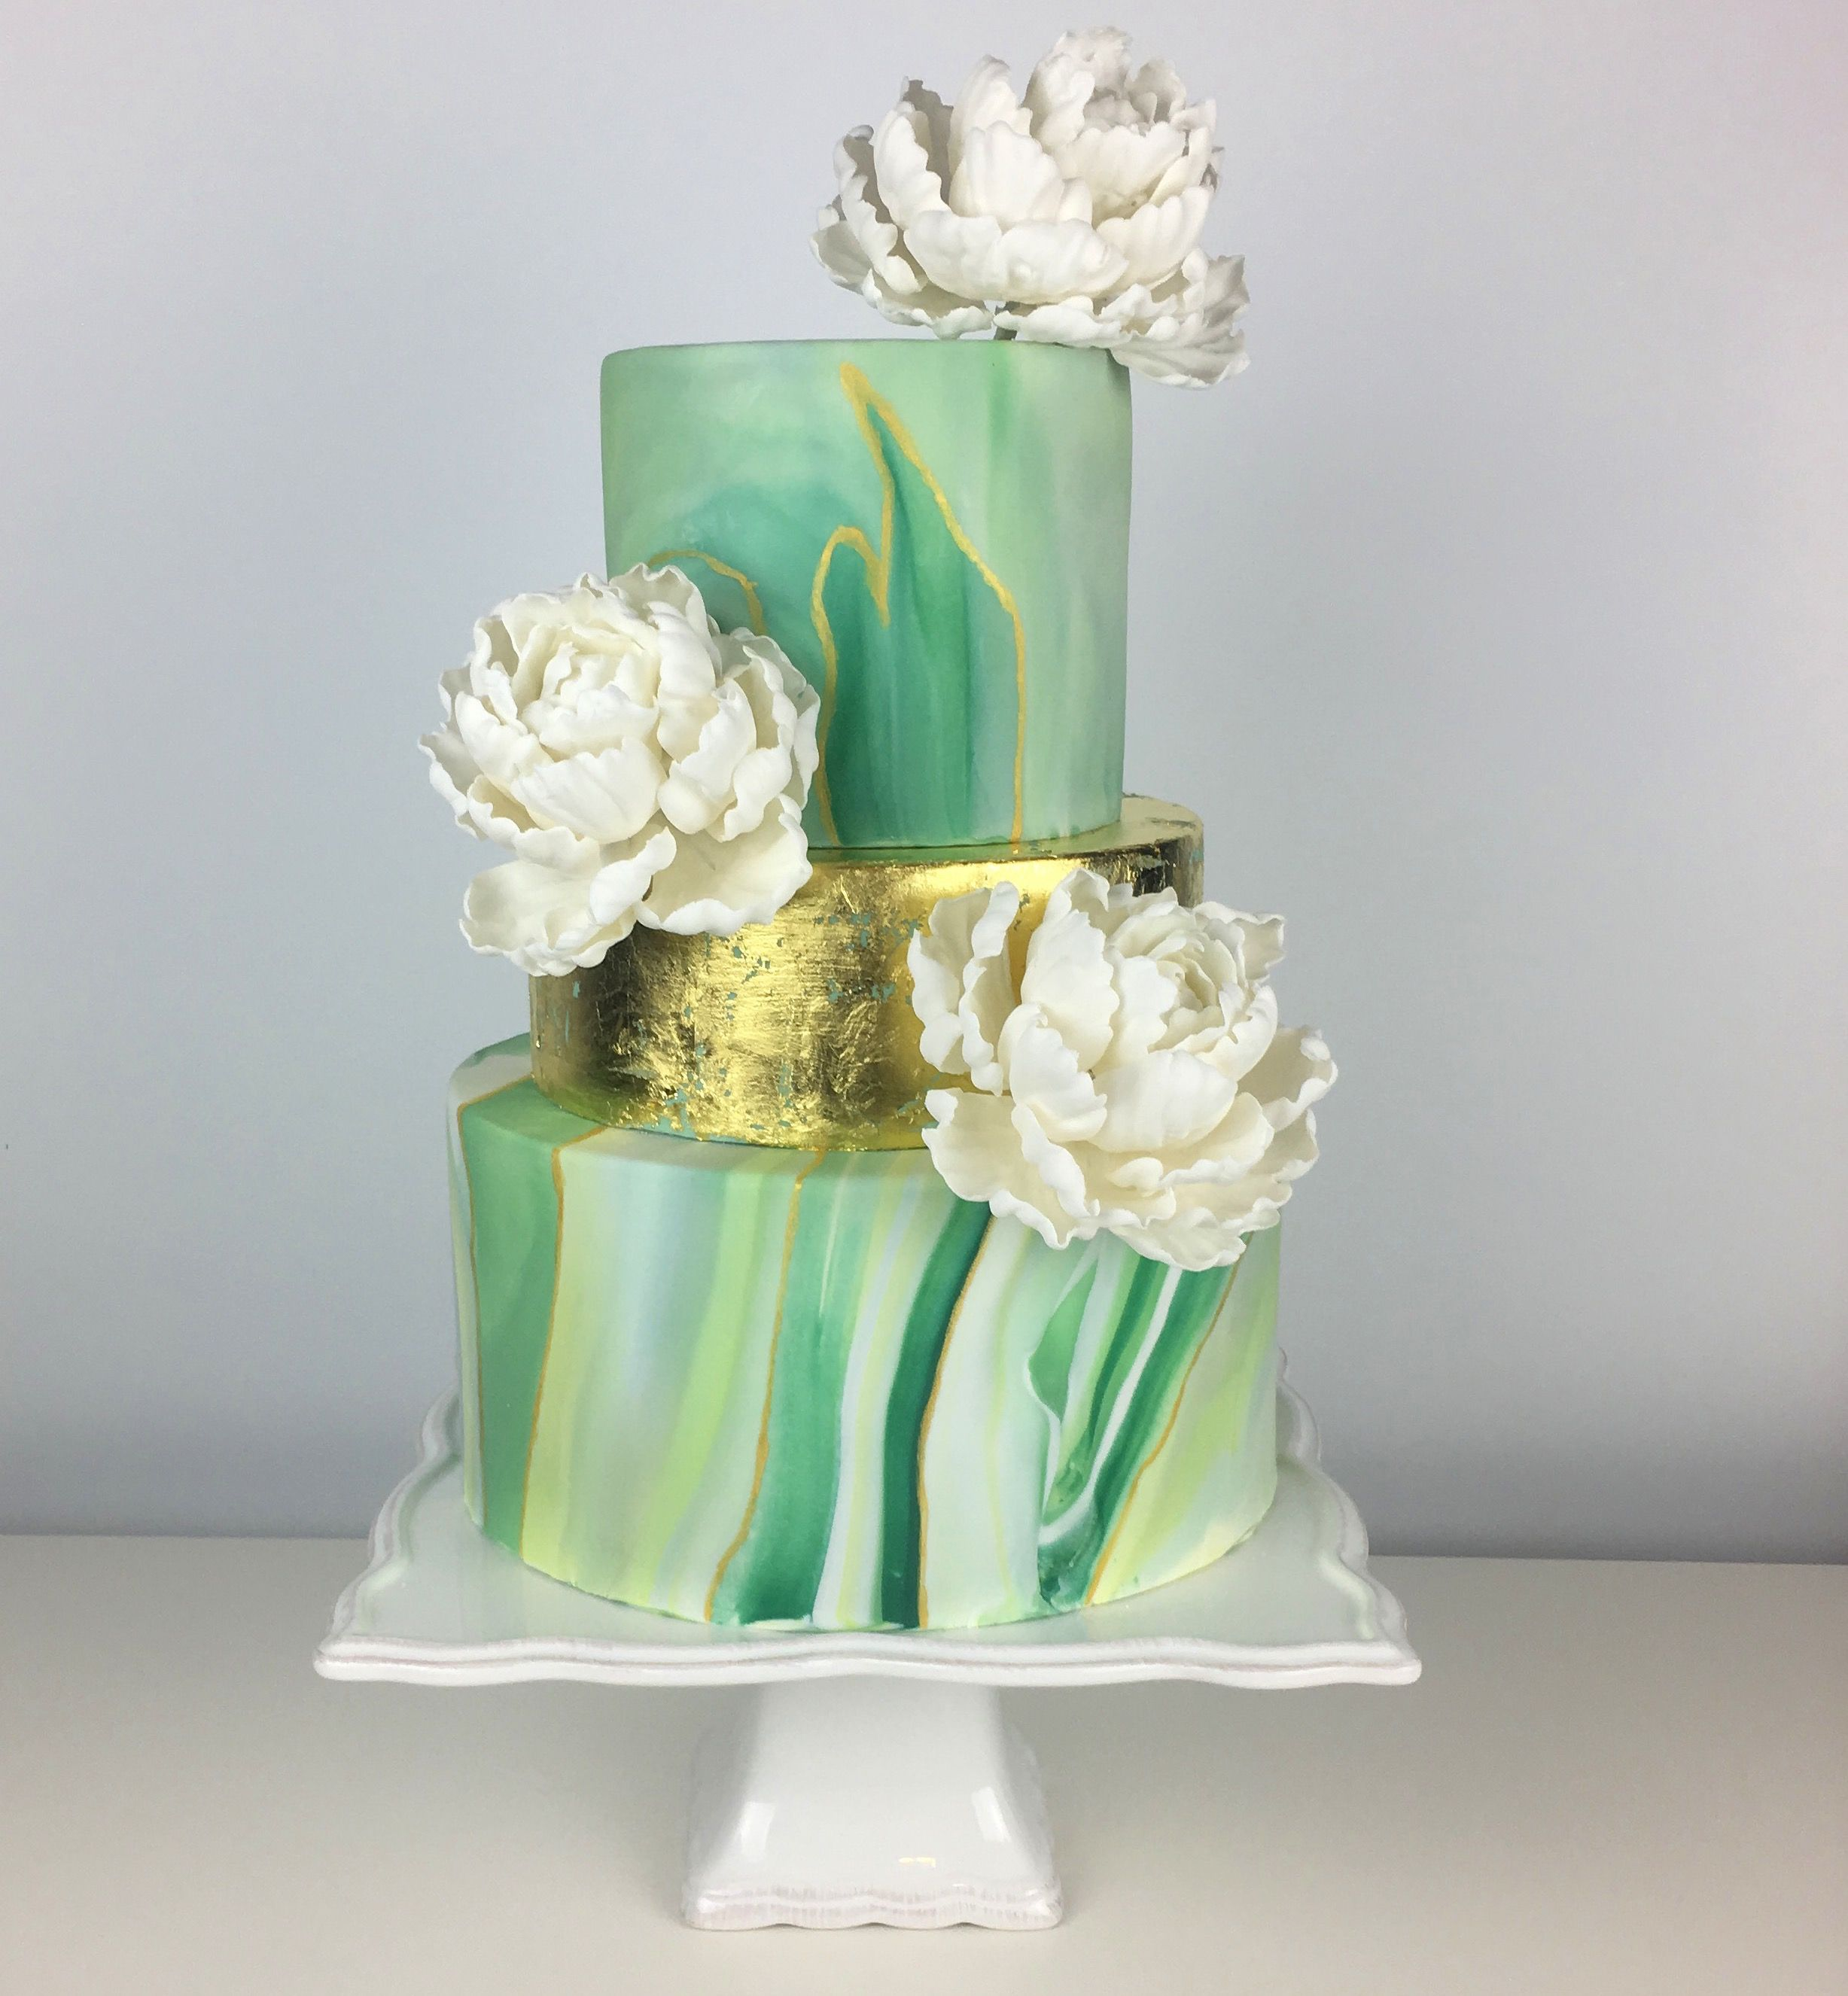 Fondant Flowers For Wedding Cakes: Marbled Green And White Fondant Wedding Cake With Gold